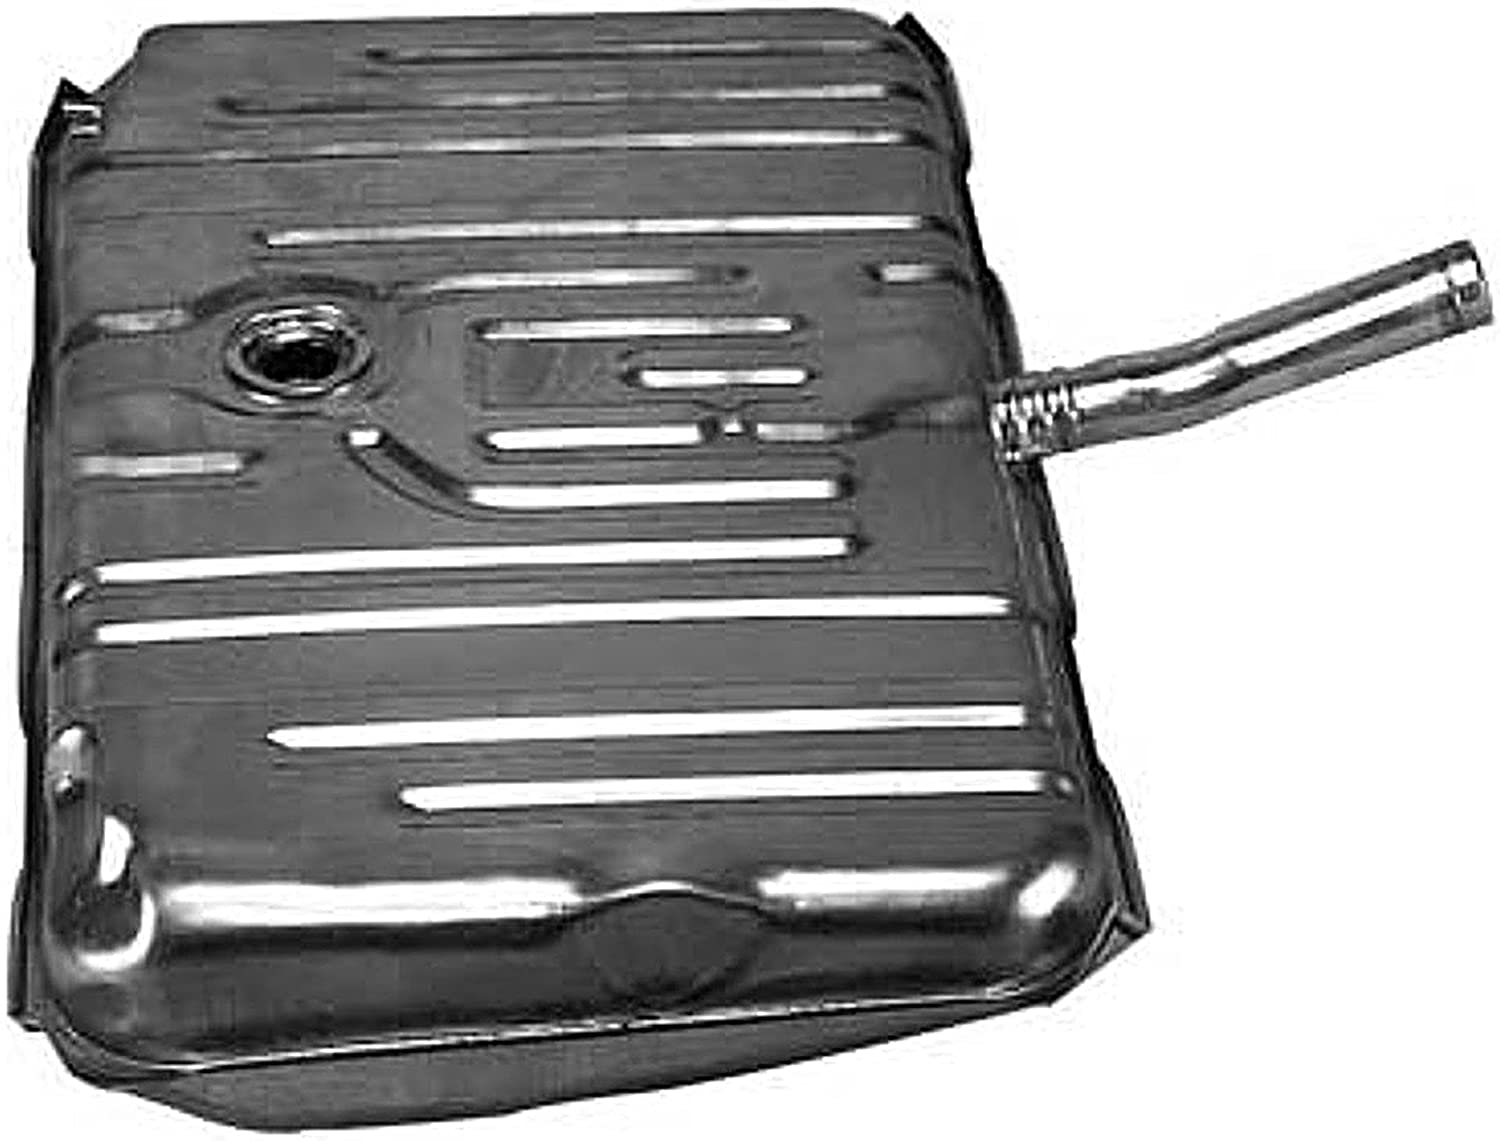 Dorman 576-064 Fuel Tank with Lock Ring and Seal